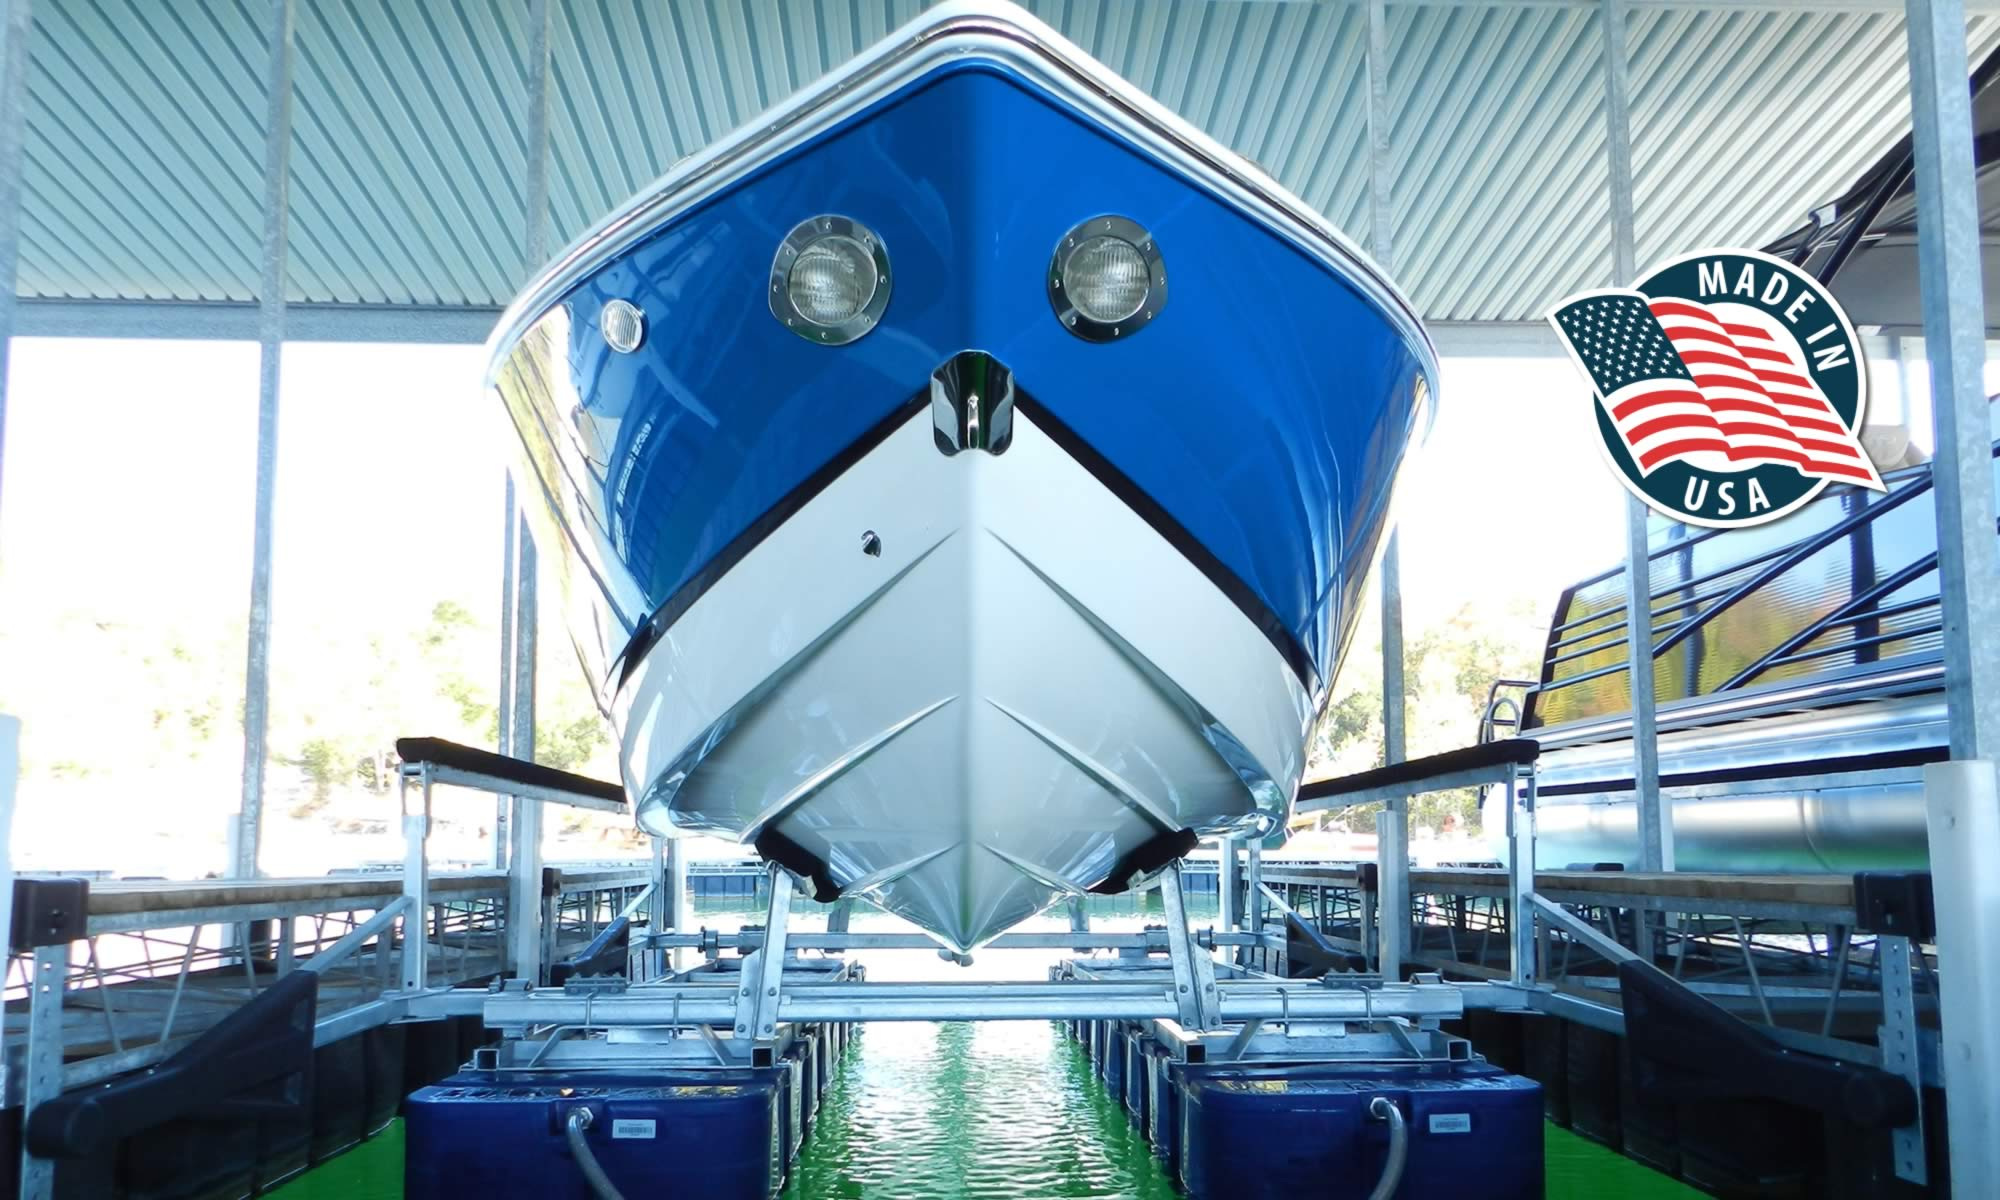 Boat Floater Boat Lifts Manufactured in The United States of America